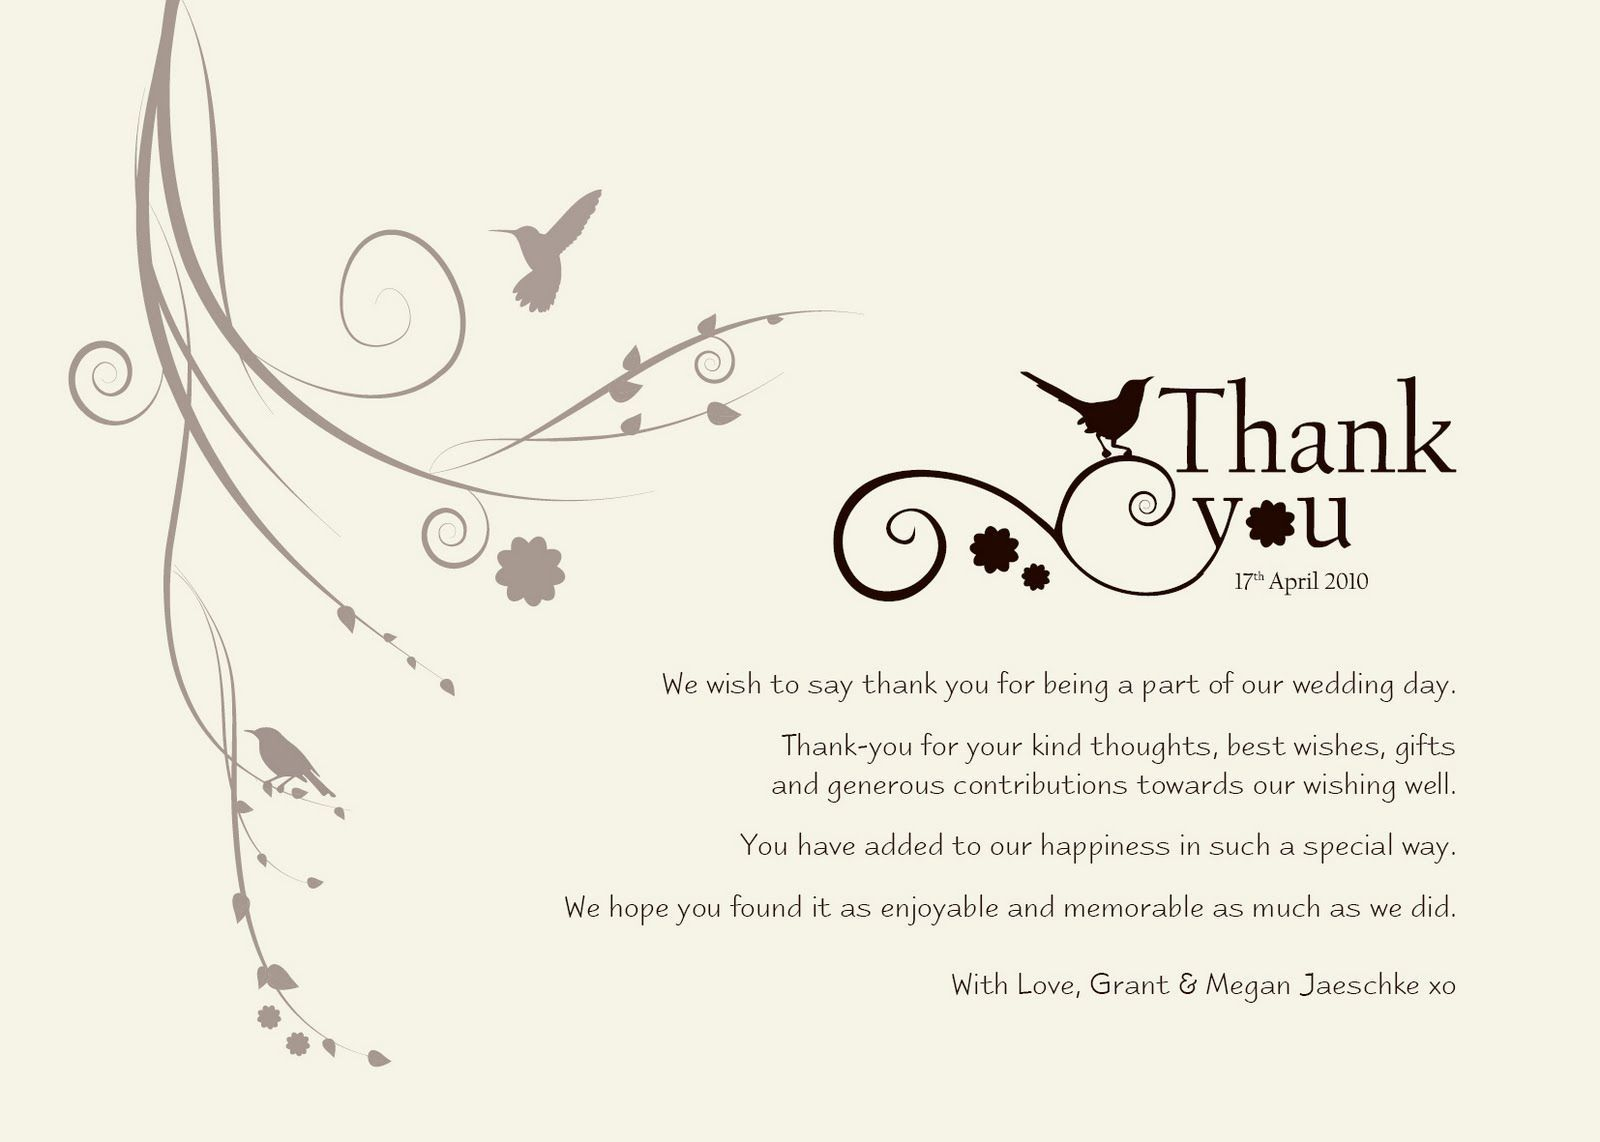 006 Dreaded Thank You Note Format Wedding High Definition  Example Card Wording Not Attending Sample For GiftFull